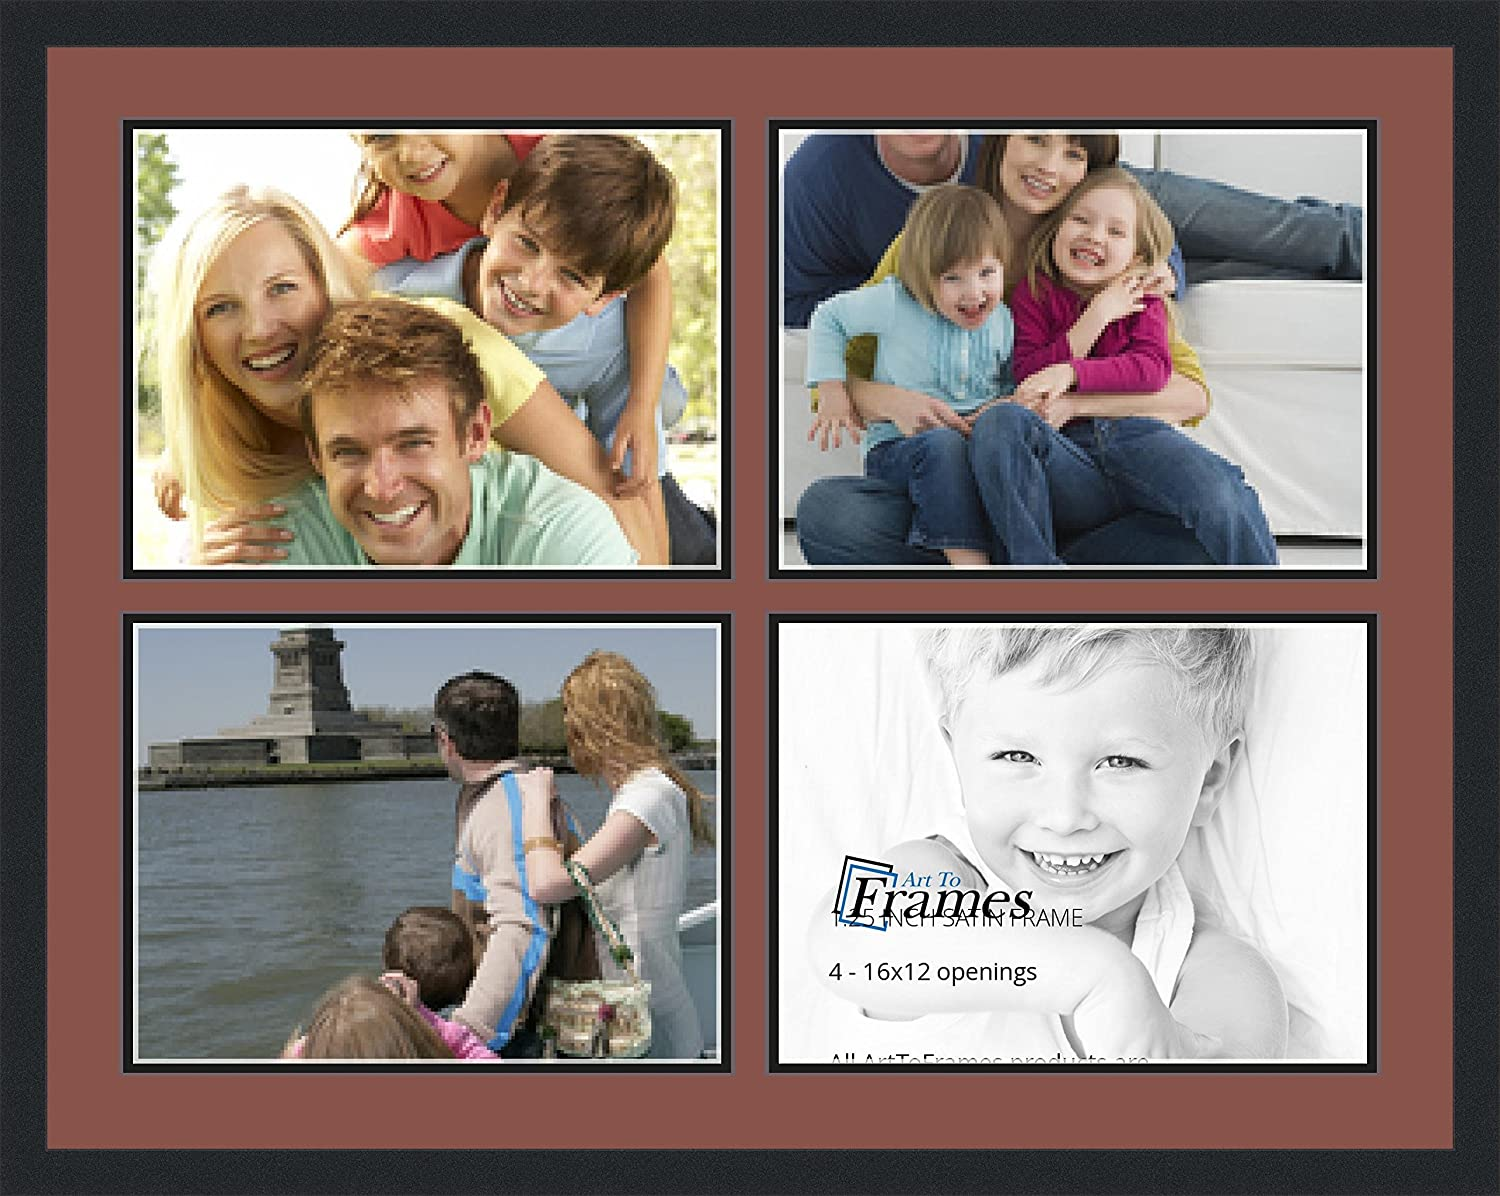 Satin Black 1.25-Inch Wide Art to Frames Double-Multimat-1601-760//89-FRBW26079 37 by 29-Inch Picture Frame